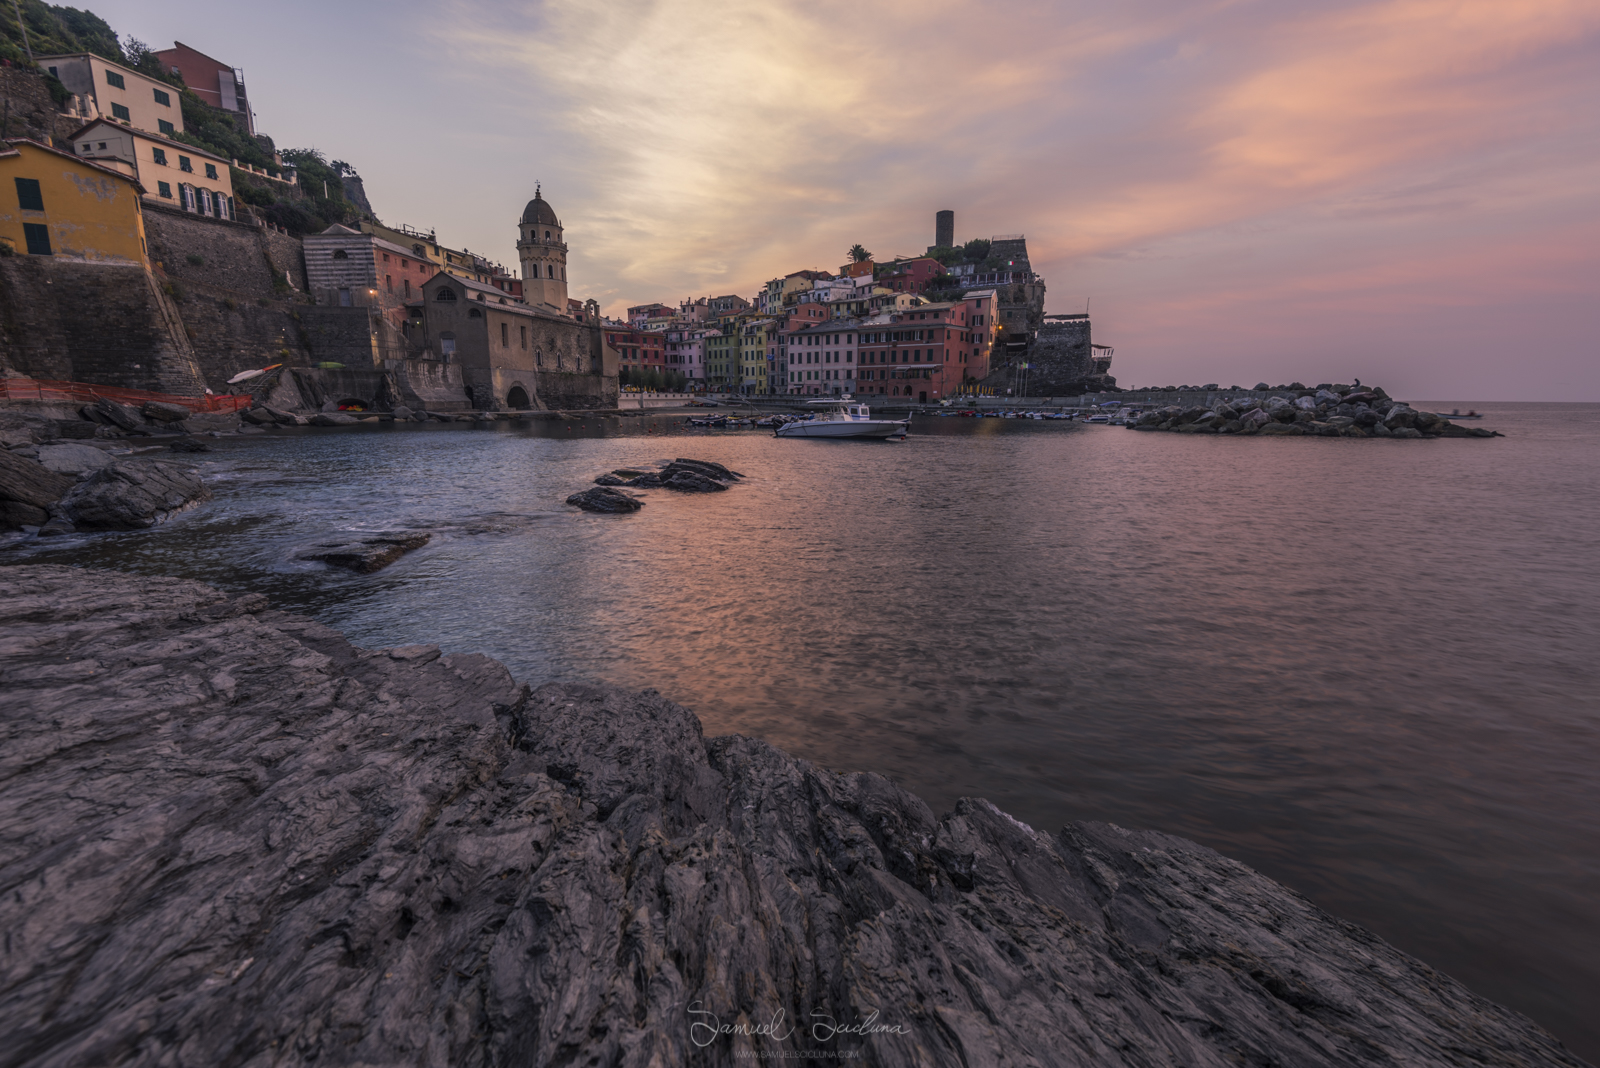 Sunrise at Vernazza - EXIF 0.5 of a second, ISO64 at F8